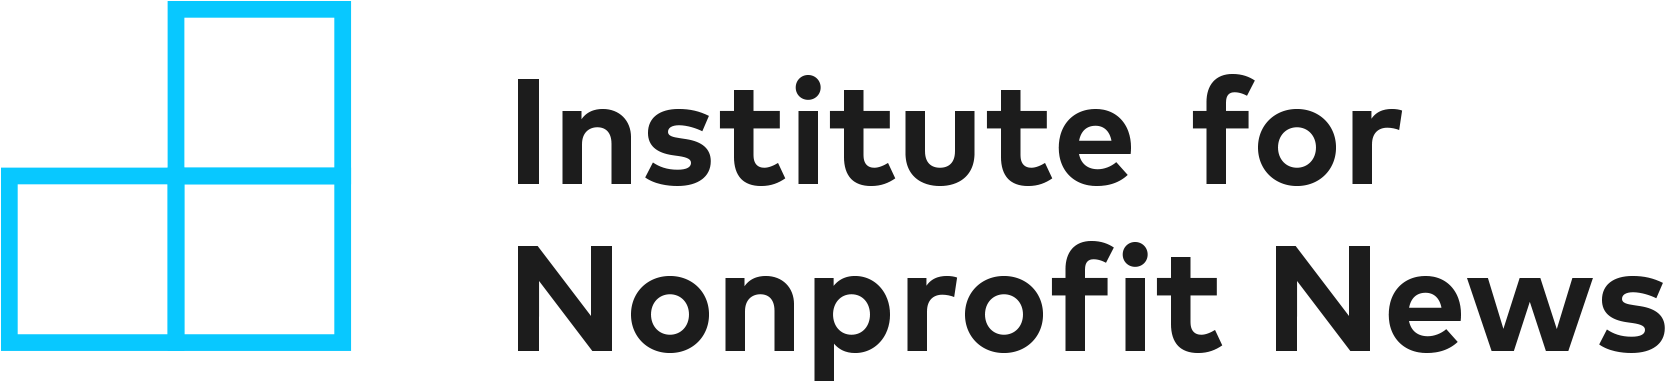 Chicago Reporter is a member of the Institute for Nonprofit News